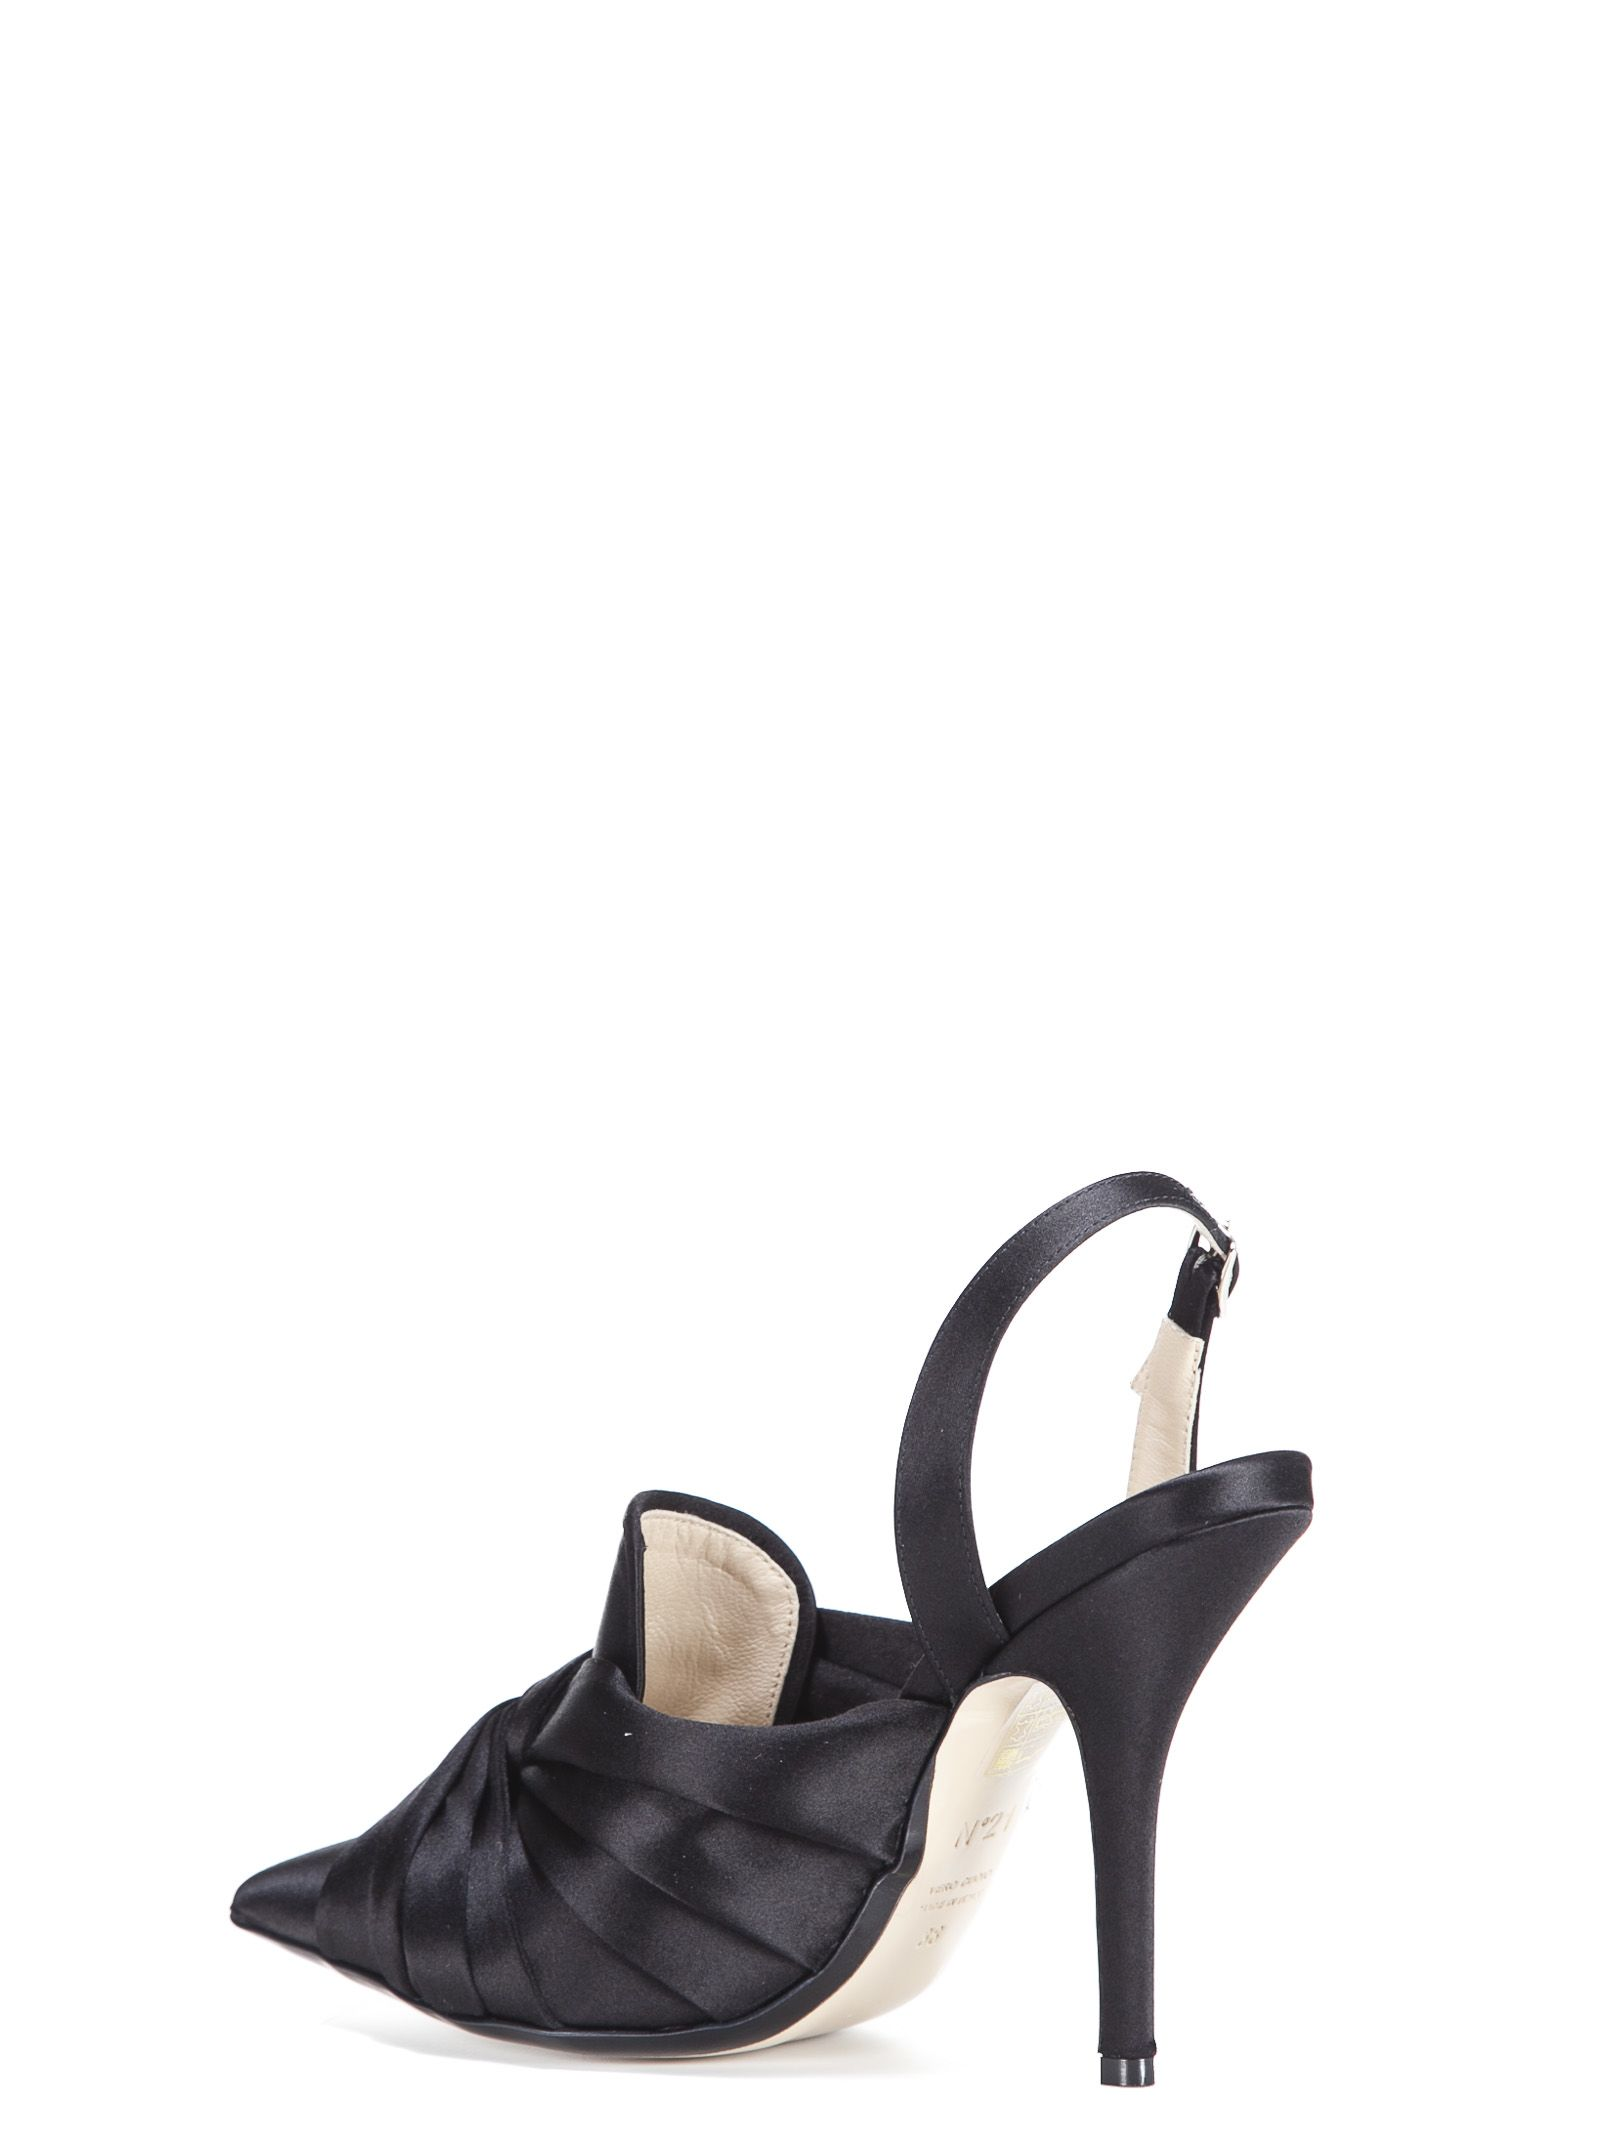 slingback twisted detail pumps - Black N��21 dN9lfVlV